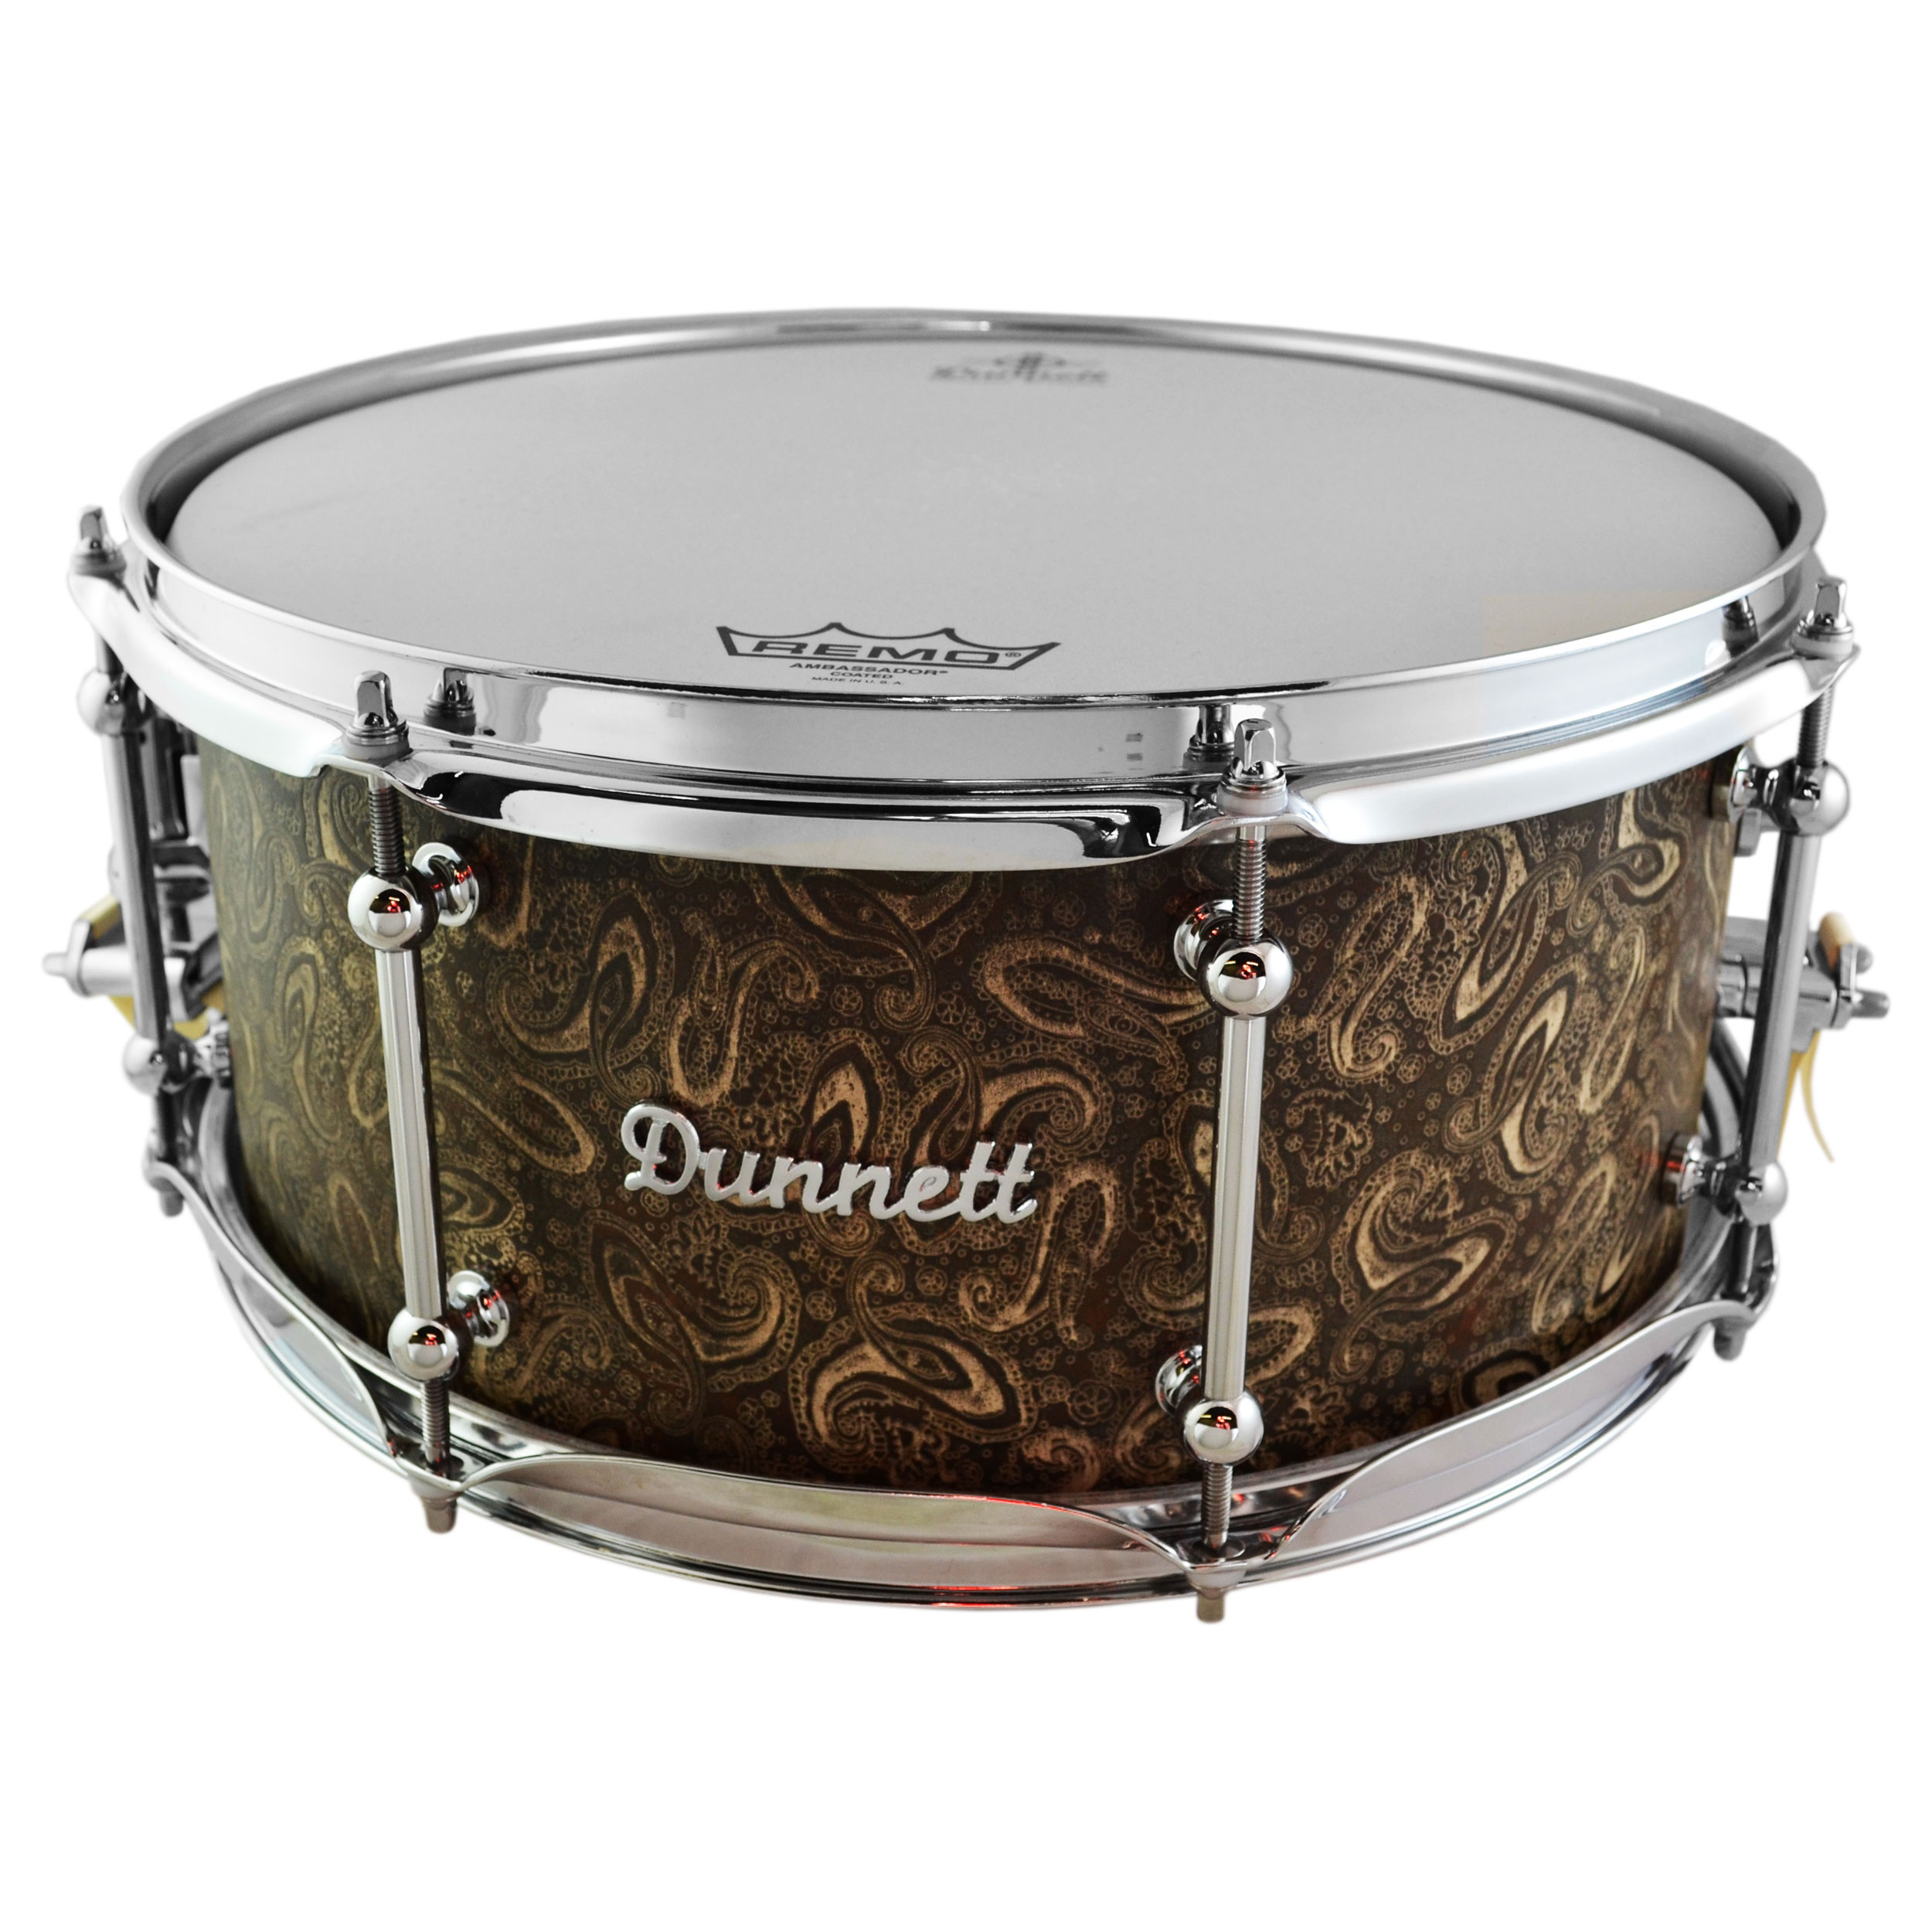 "Dunnett 6.5"" x 14"" James Trussart Paisley Rust-o-Matic Steel Snare Drum"